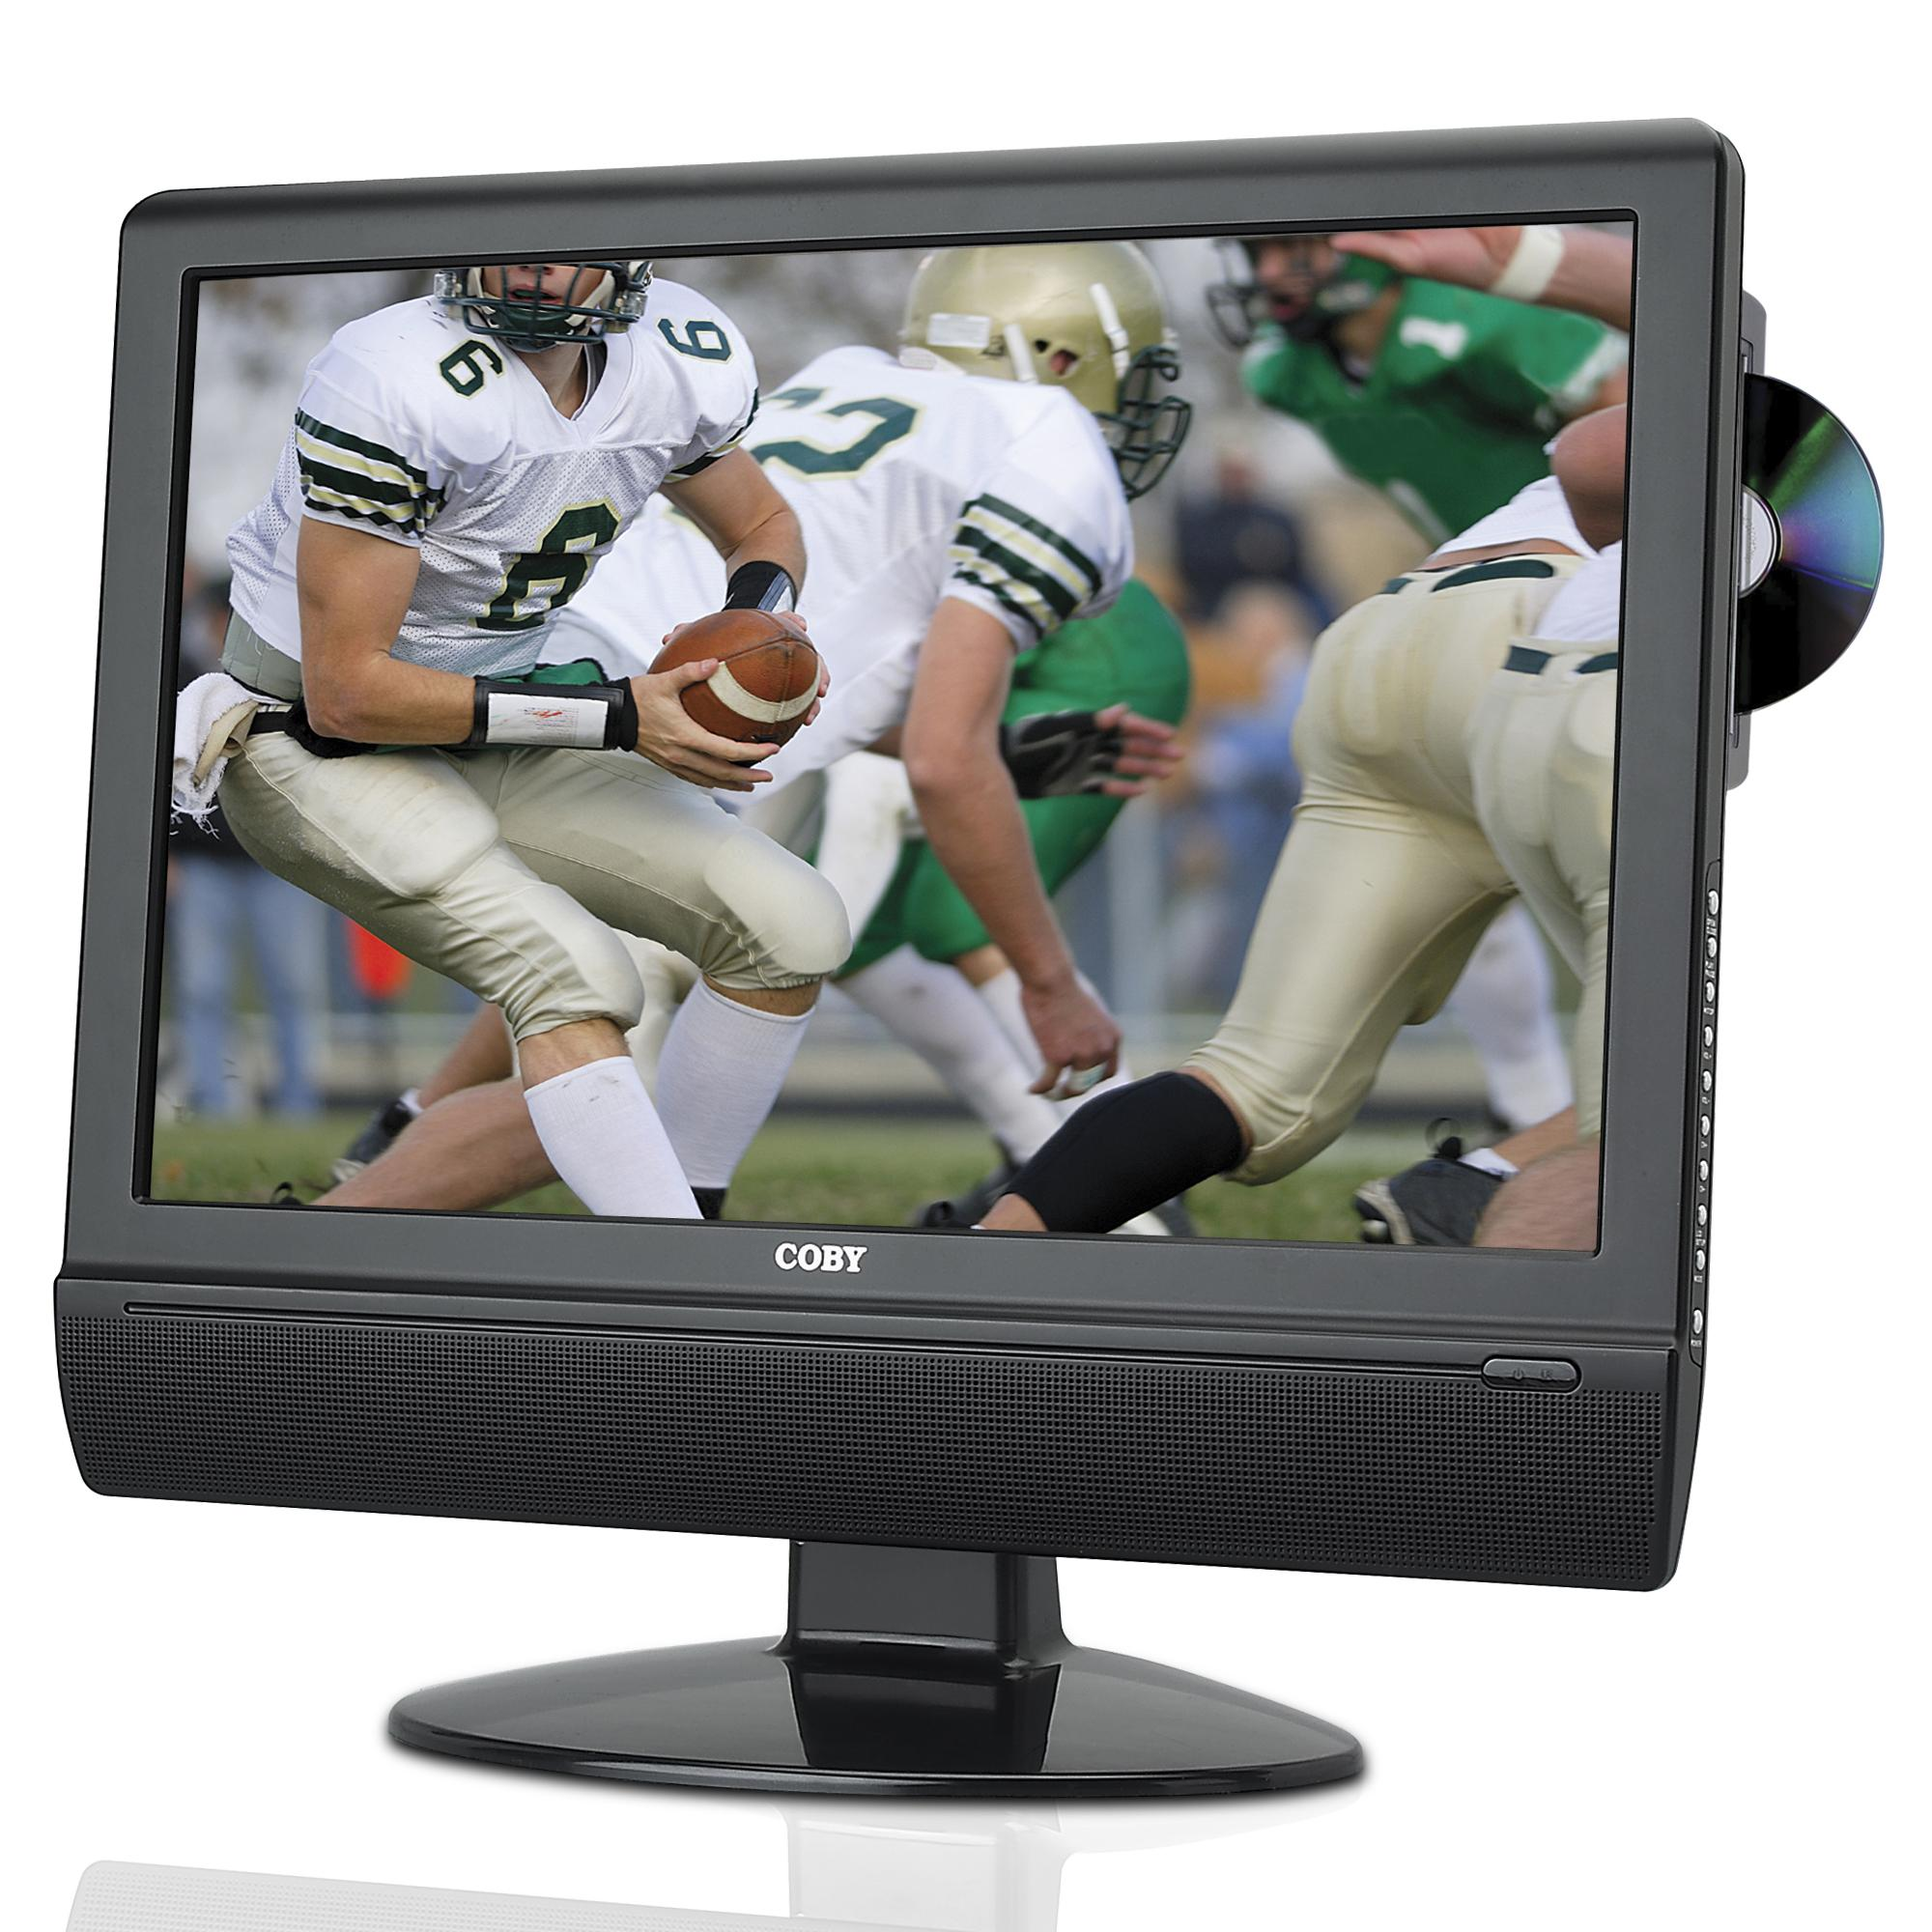 Coby 22 Inch Lcd Tv Dvd Player Combo Free Shipping Today